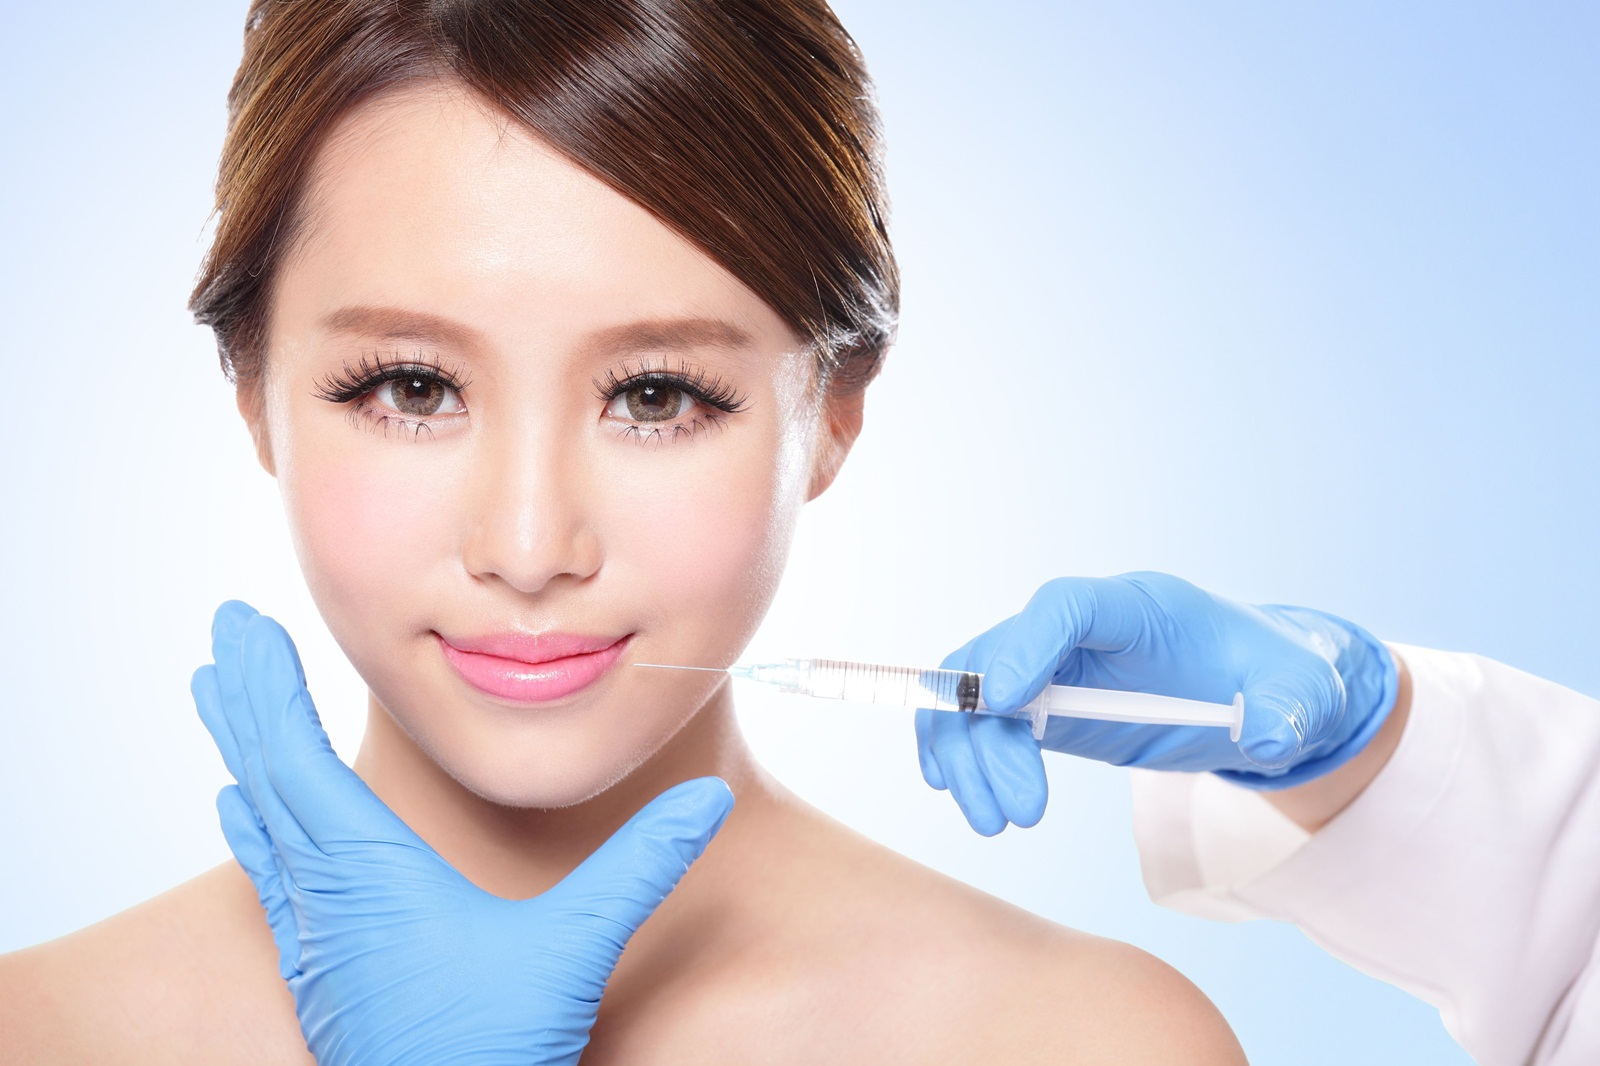 Average Cost Of Cosmetic Surgery   Cosmetic & Plastic Surgery Financing   Liposuction, Breast Implants, Lips   Denefits